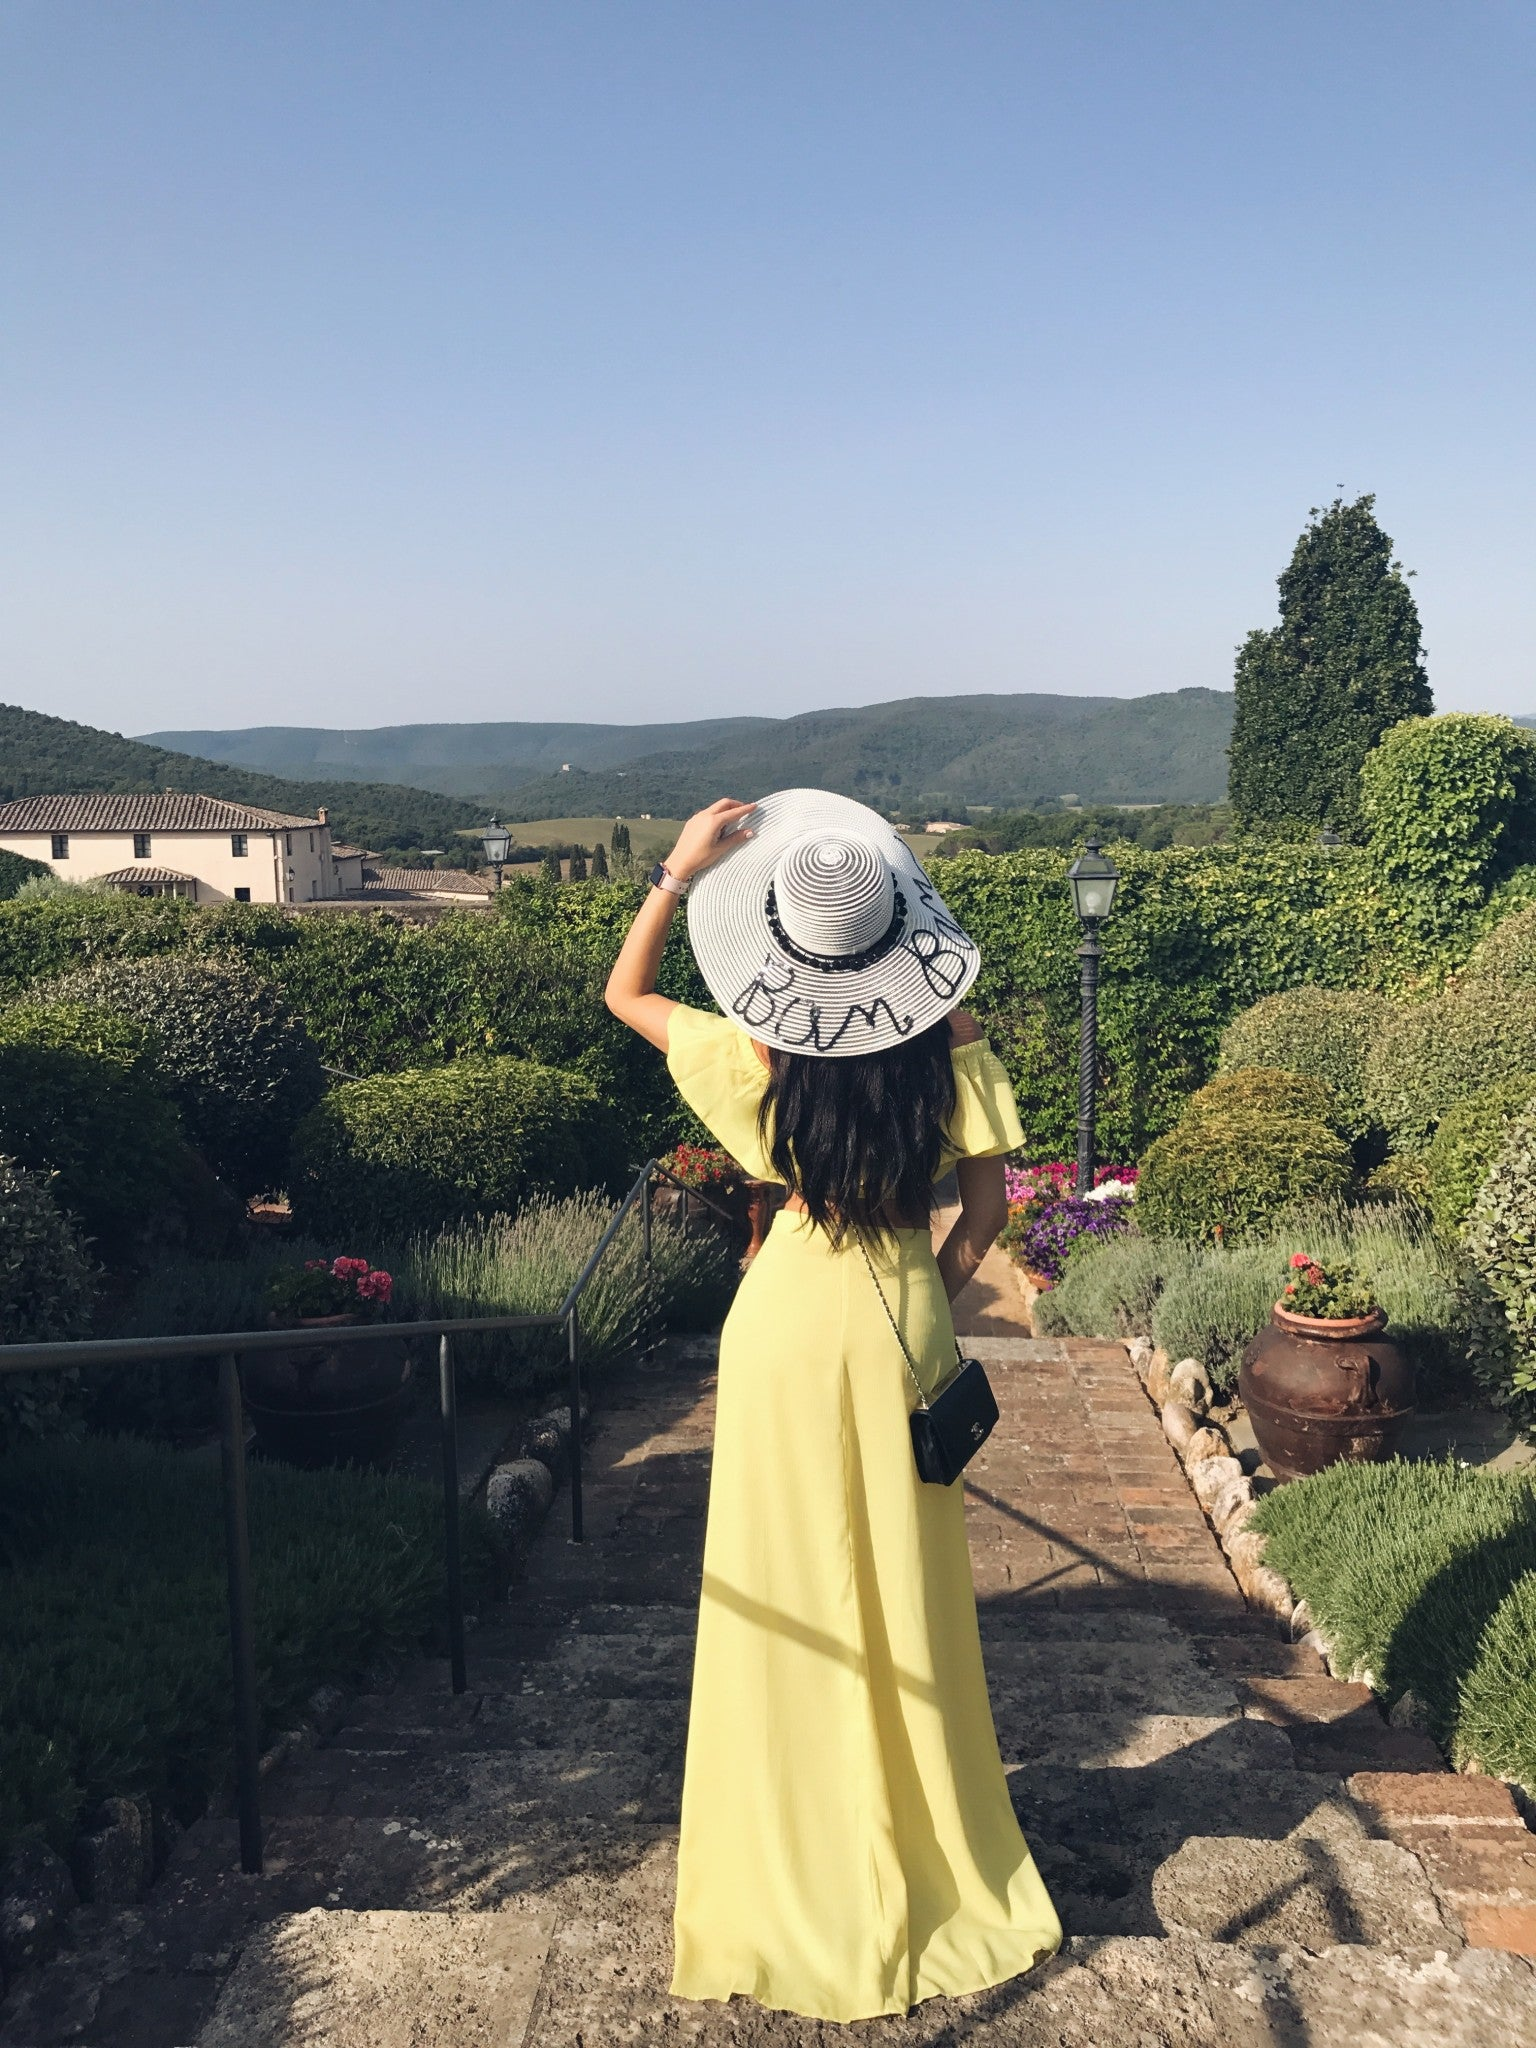 Things to do in Tuscany - La Bagnaia Golf & Spa Resort Siena - Vintage Fiat500 tour review